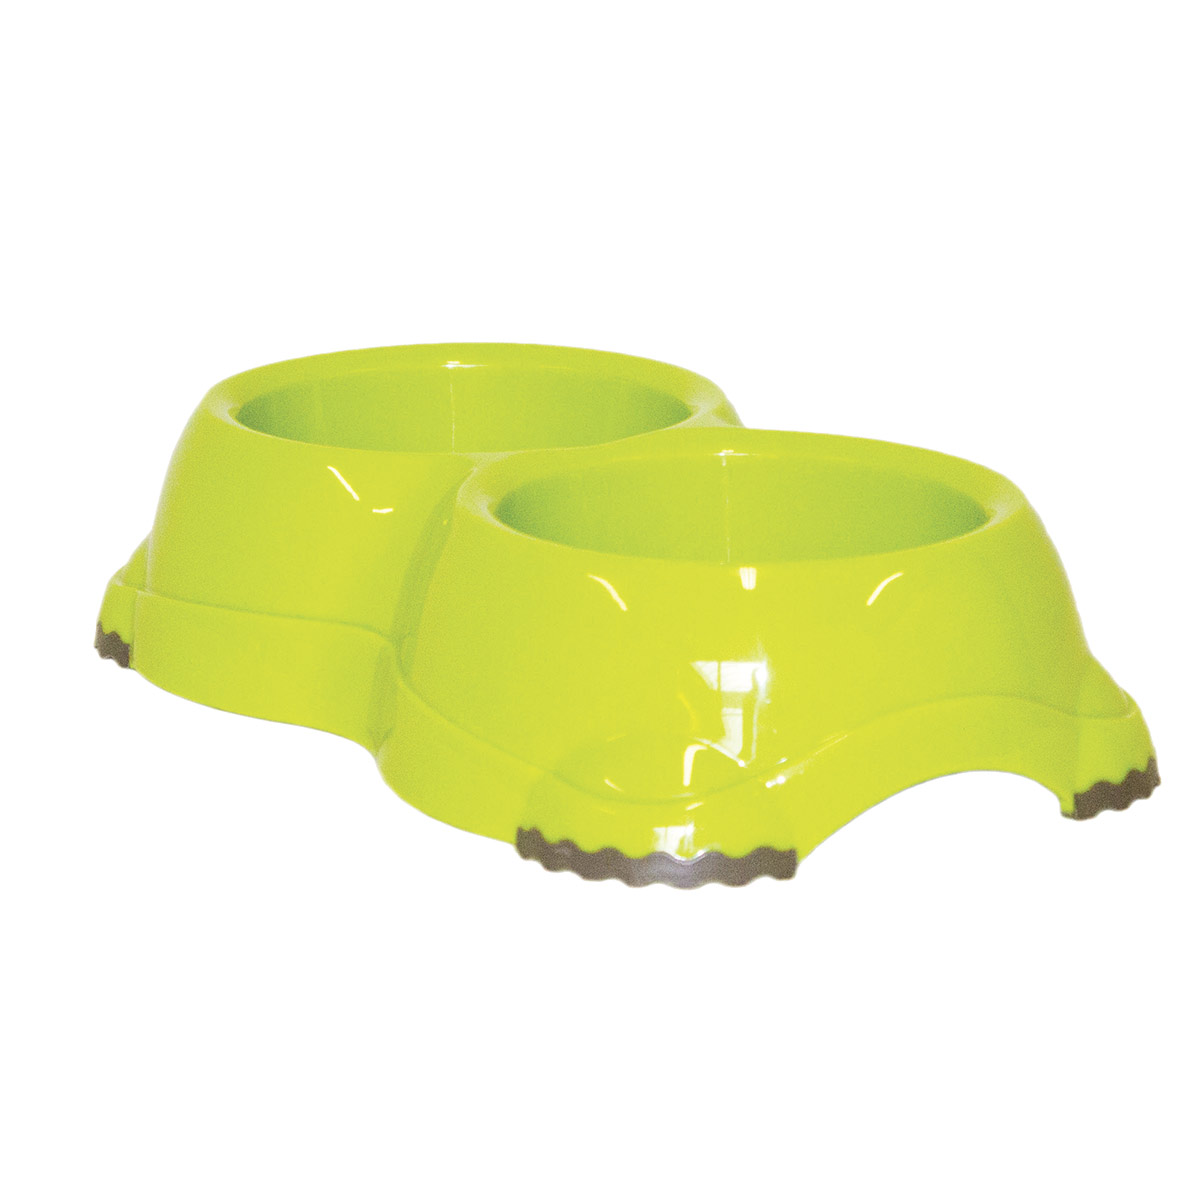 Moderna Double Smarty Dog Duo Bowl Dog Fun Green - No Skid